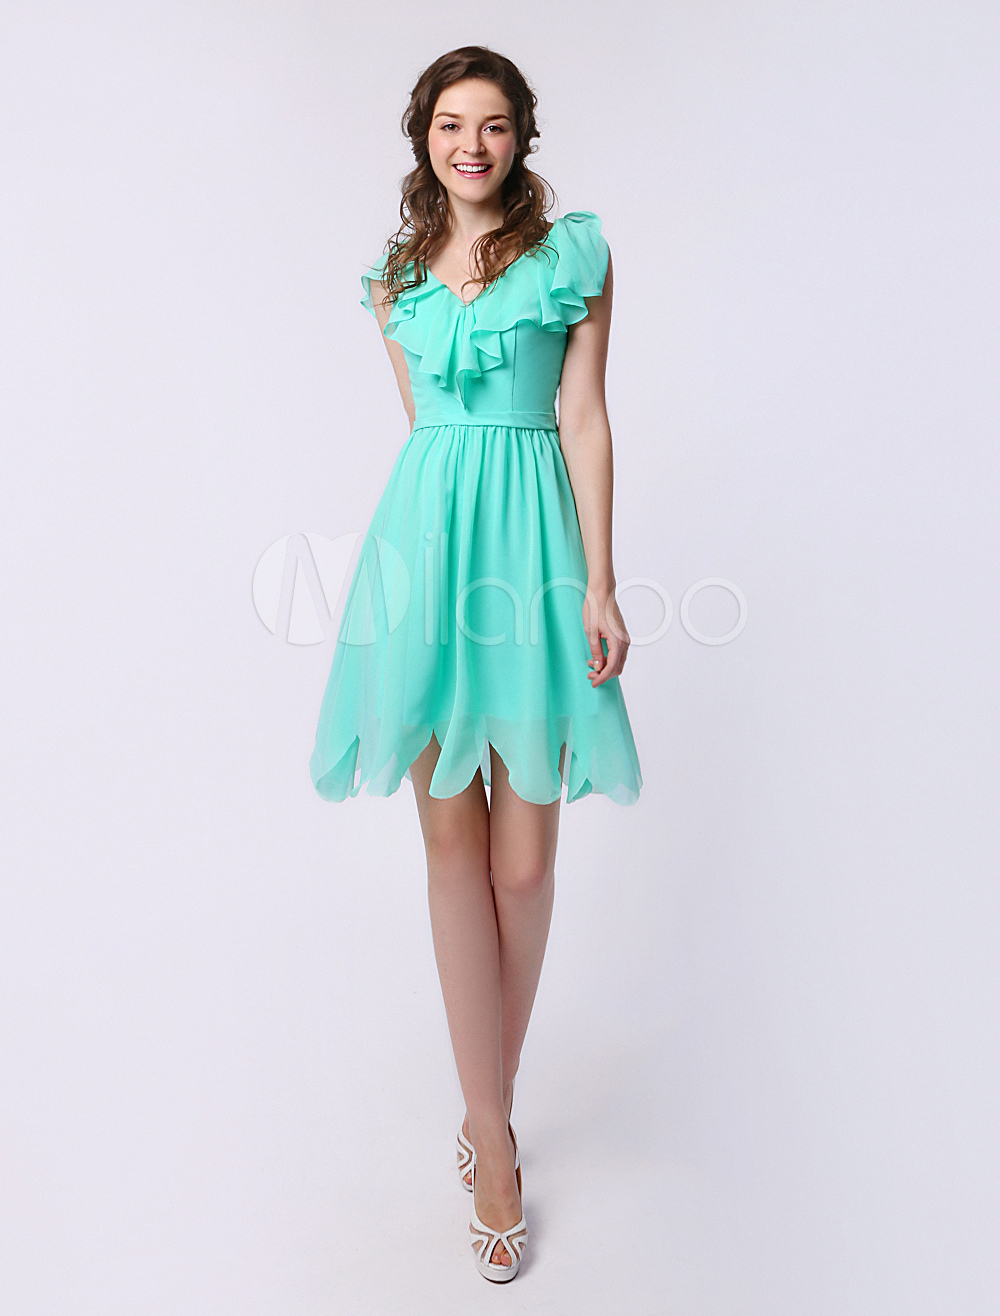 Short Bridesmaid Dress Mint Green V Neck Ruffle Chiffon A Line Party Dress Milanoo